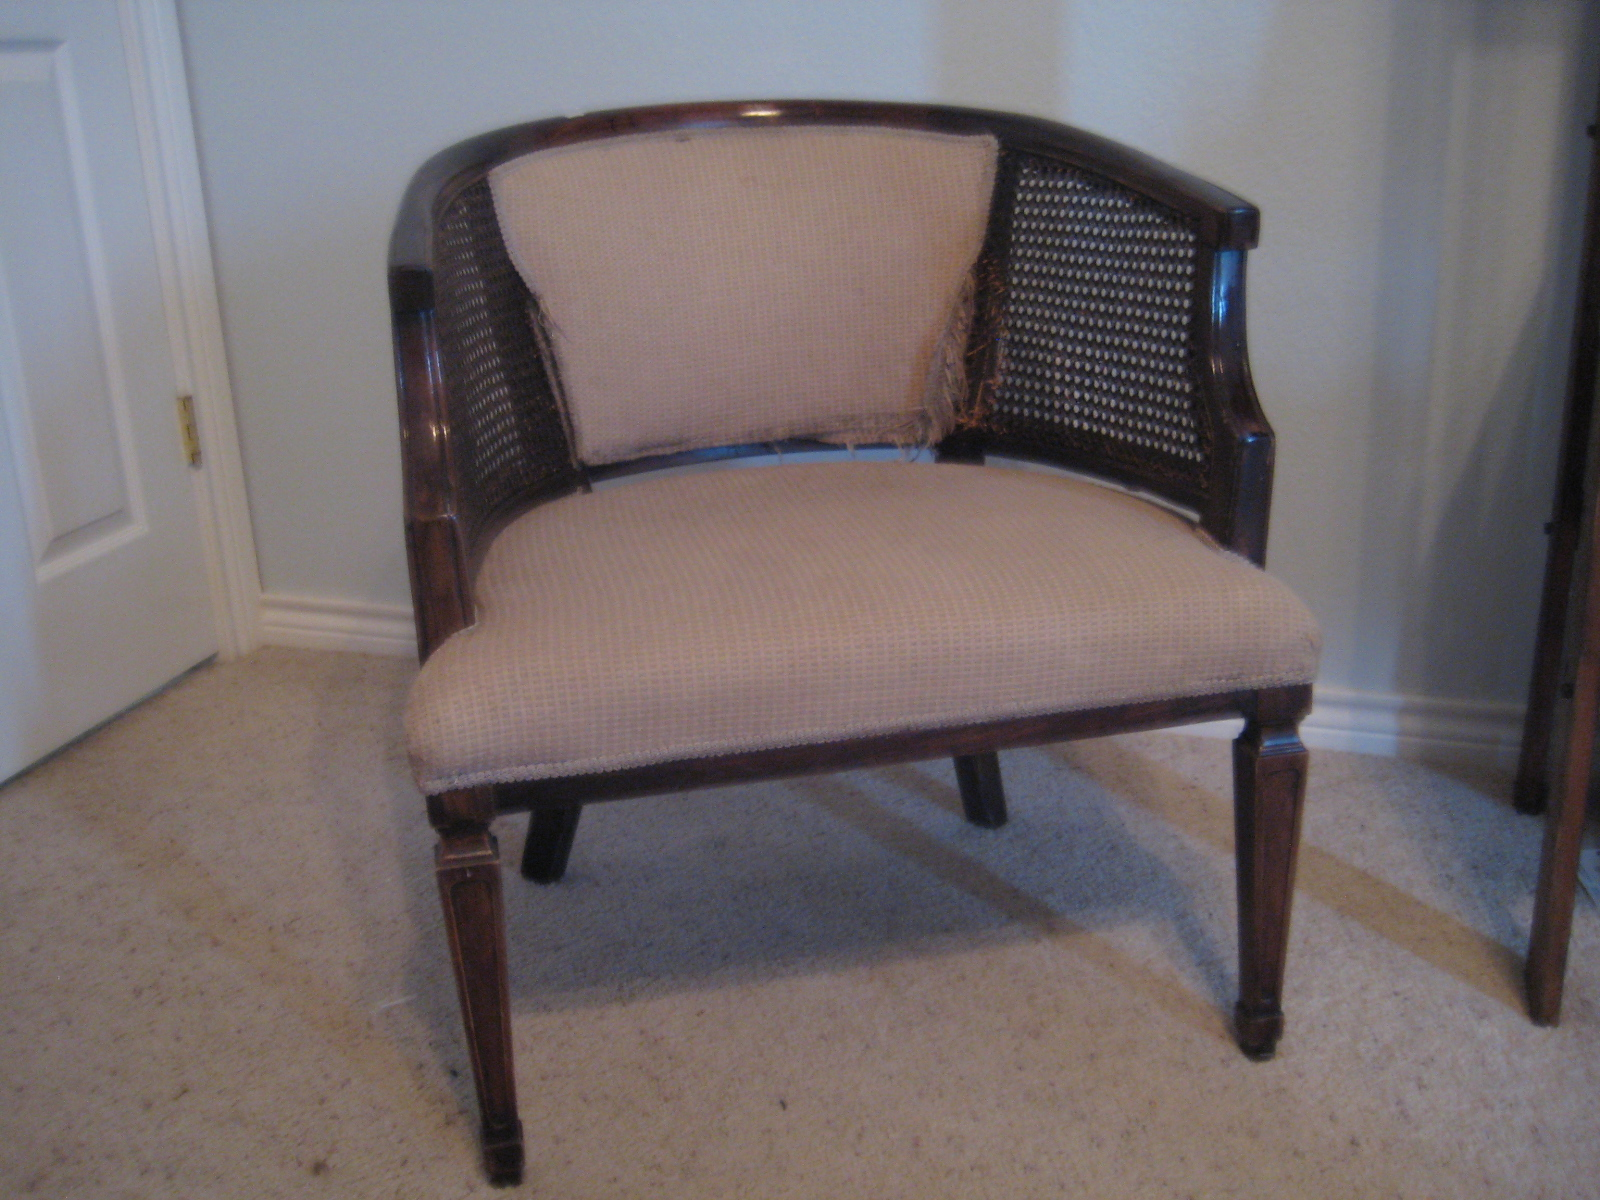 where can i buy cane for chairs ergonomic chair tilt adventures in creating reupholstered